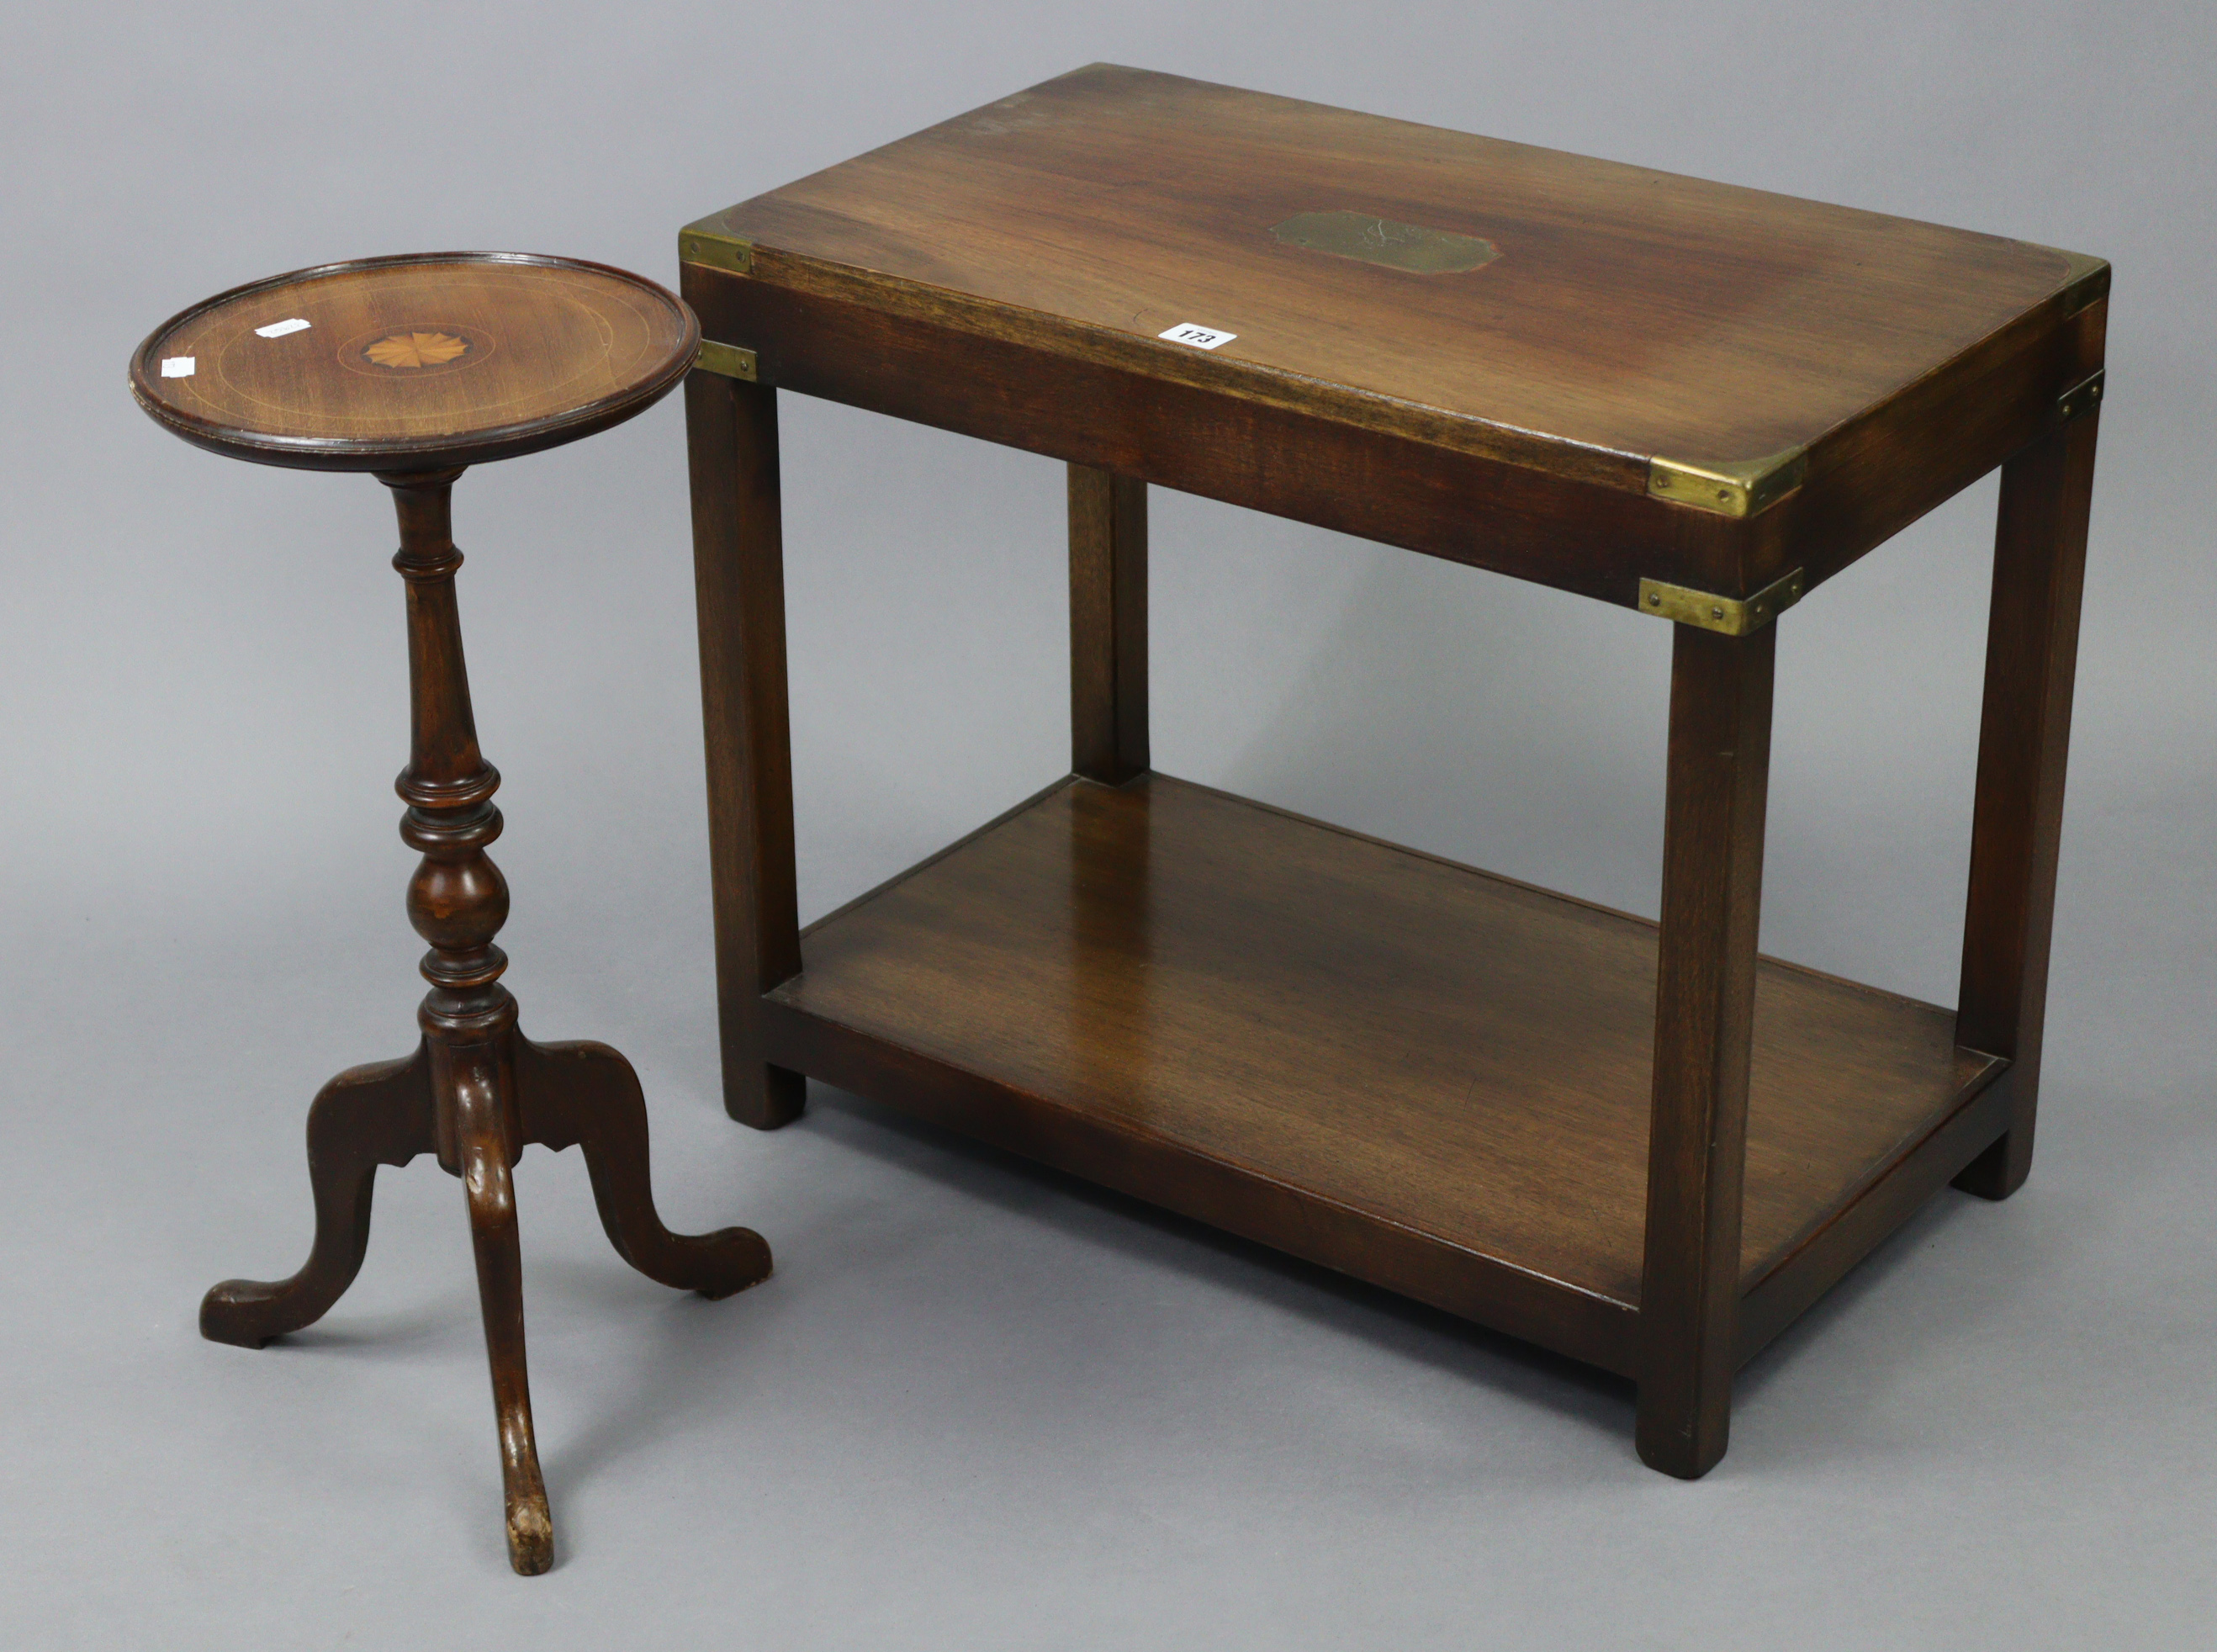 A reproduction brass-mounted mahogany campaign-style rectangular two tier coffee table on square